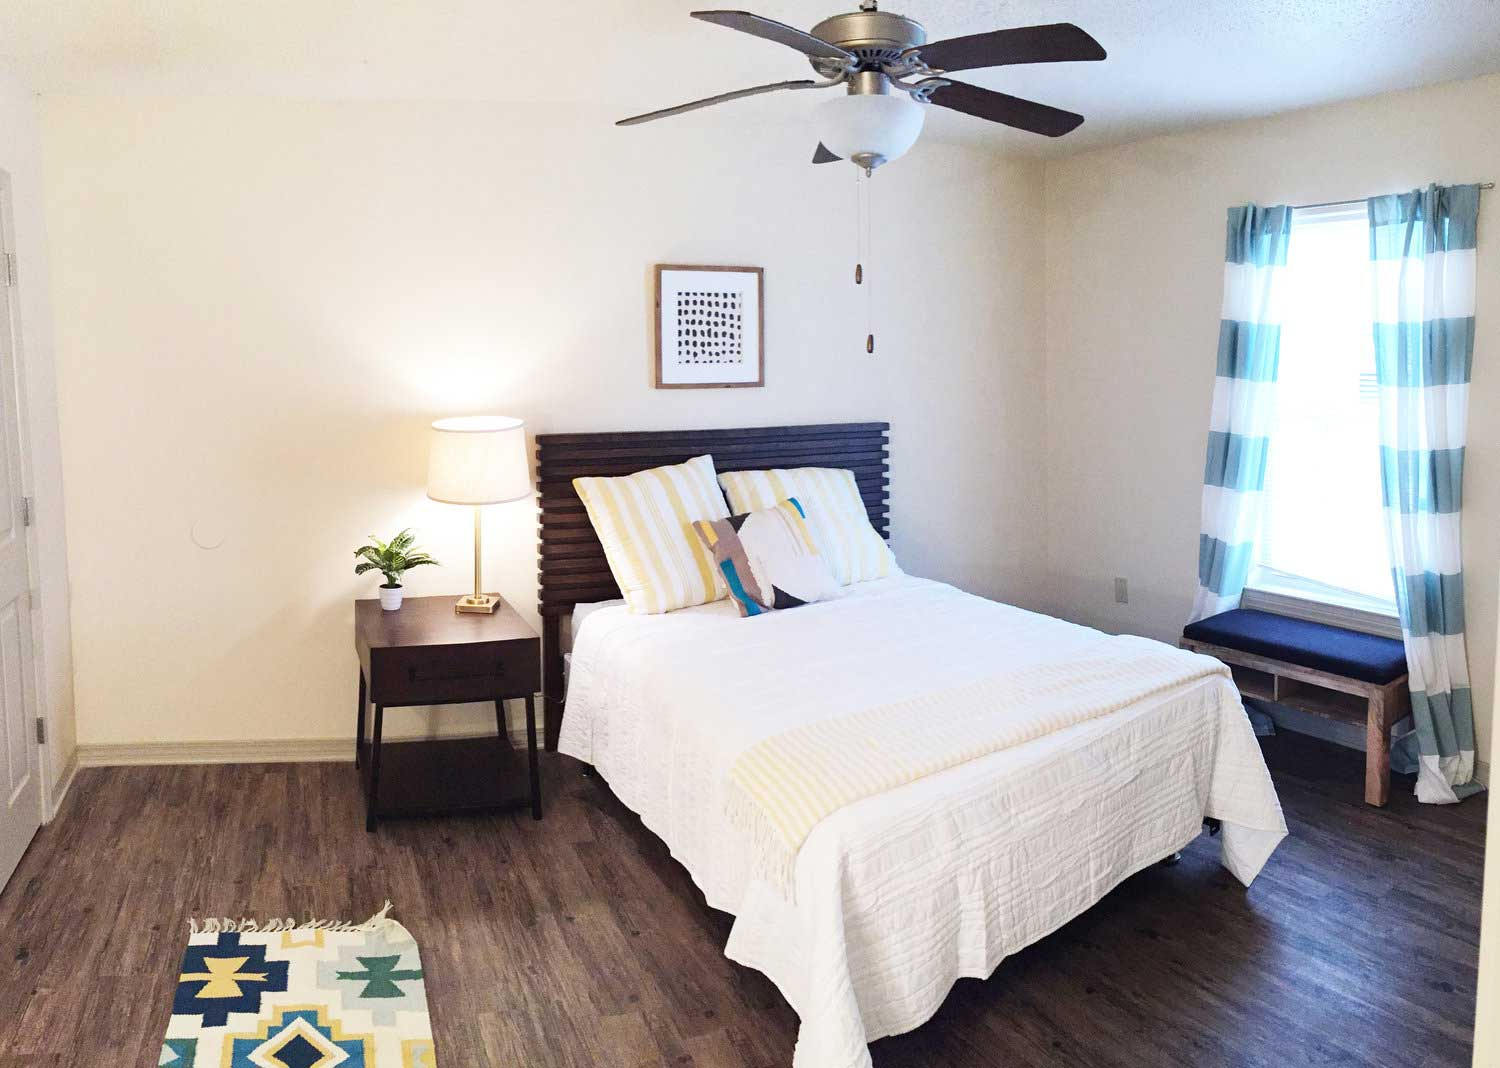 1 and 2-Bedroom Apartments for Rent at Ardendale Oaks Apartments in Baton Rouge, Louisiana